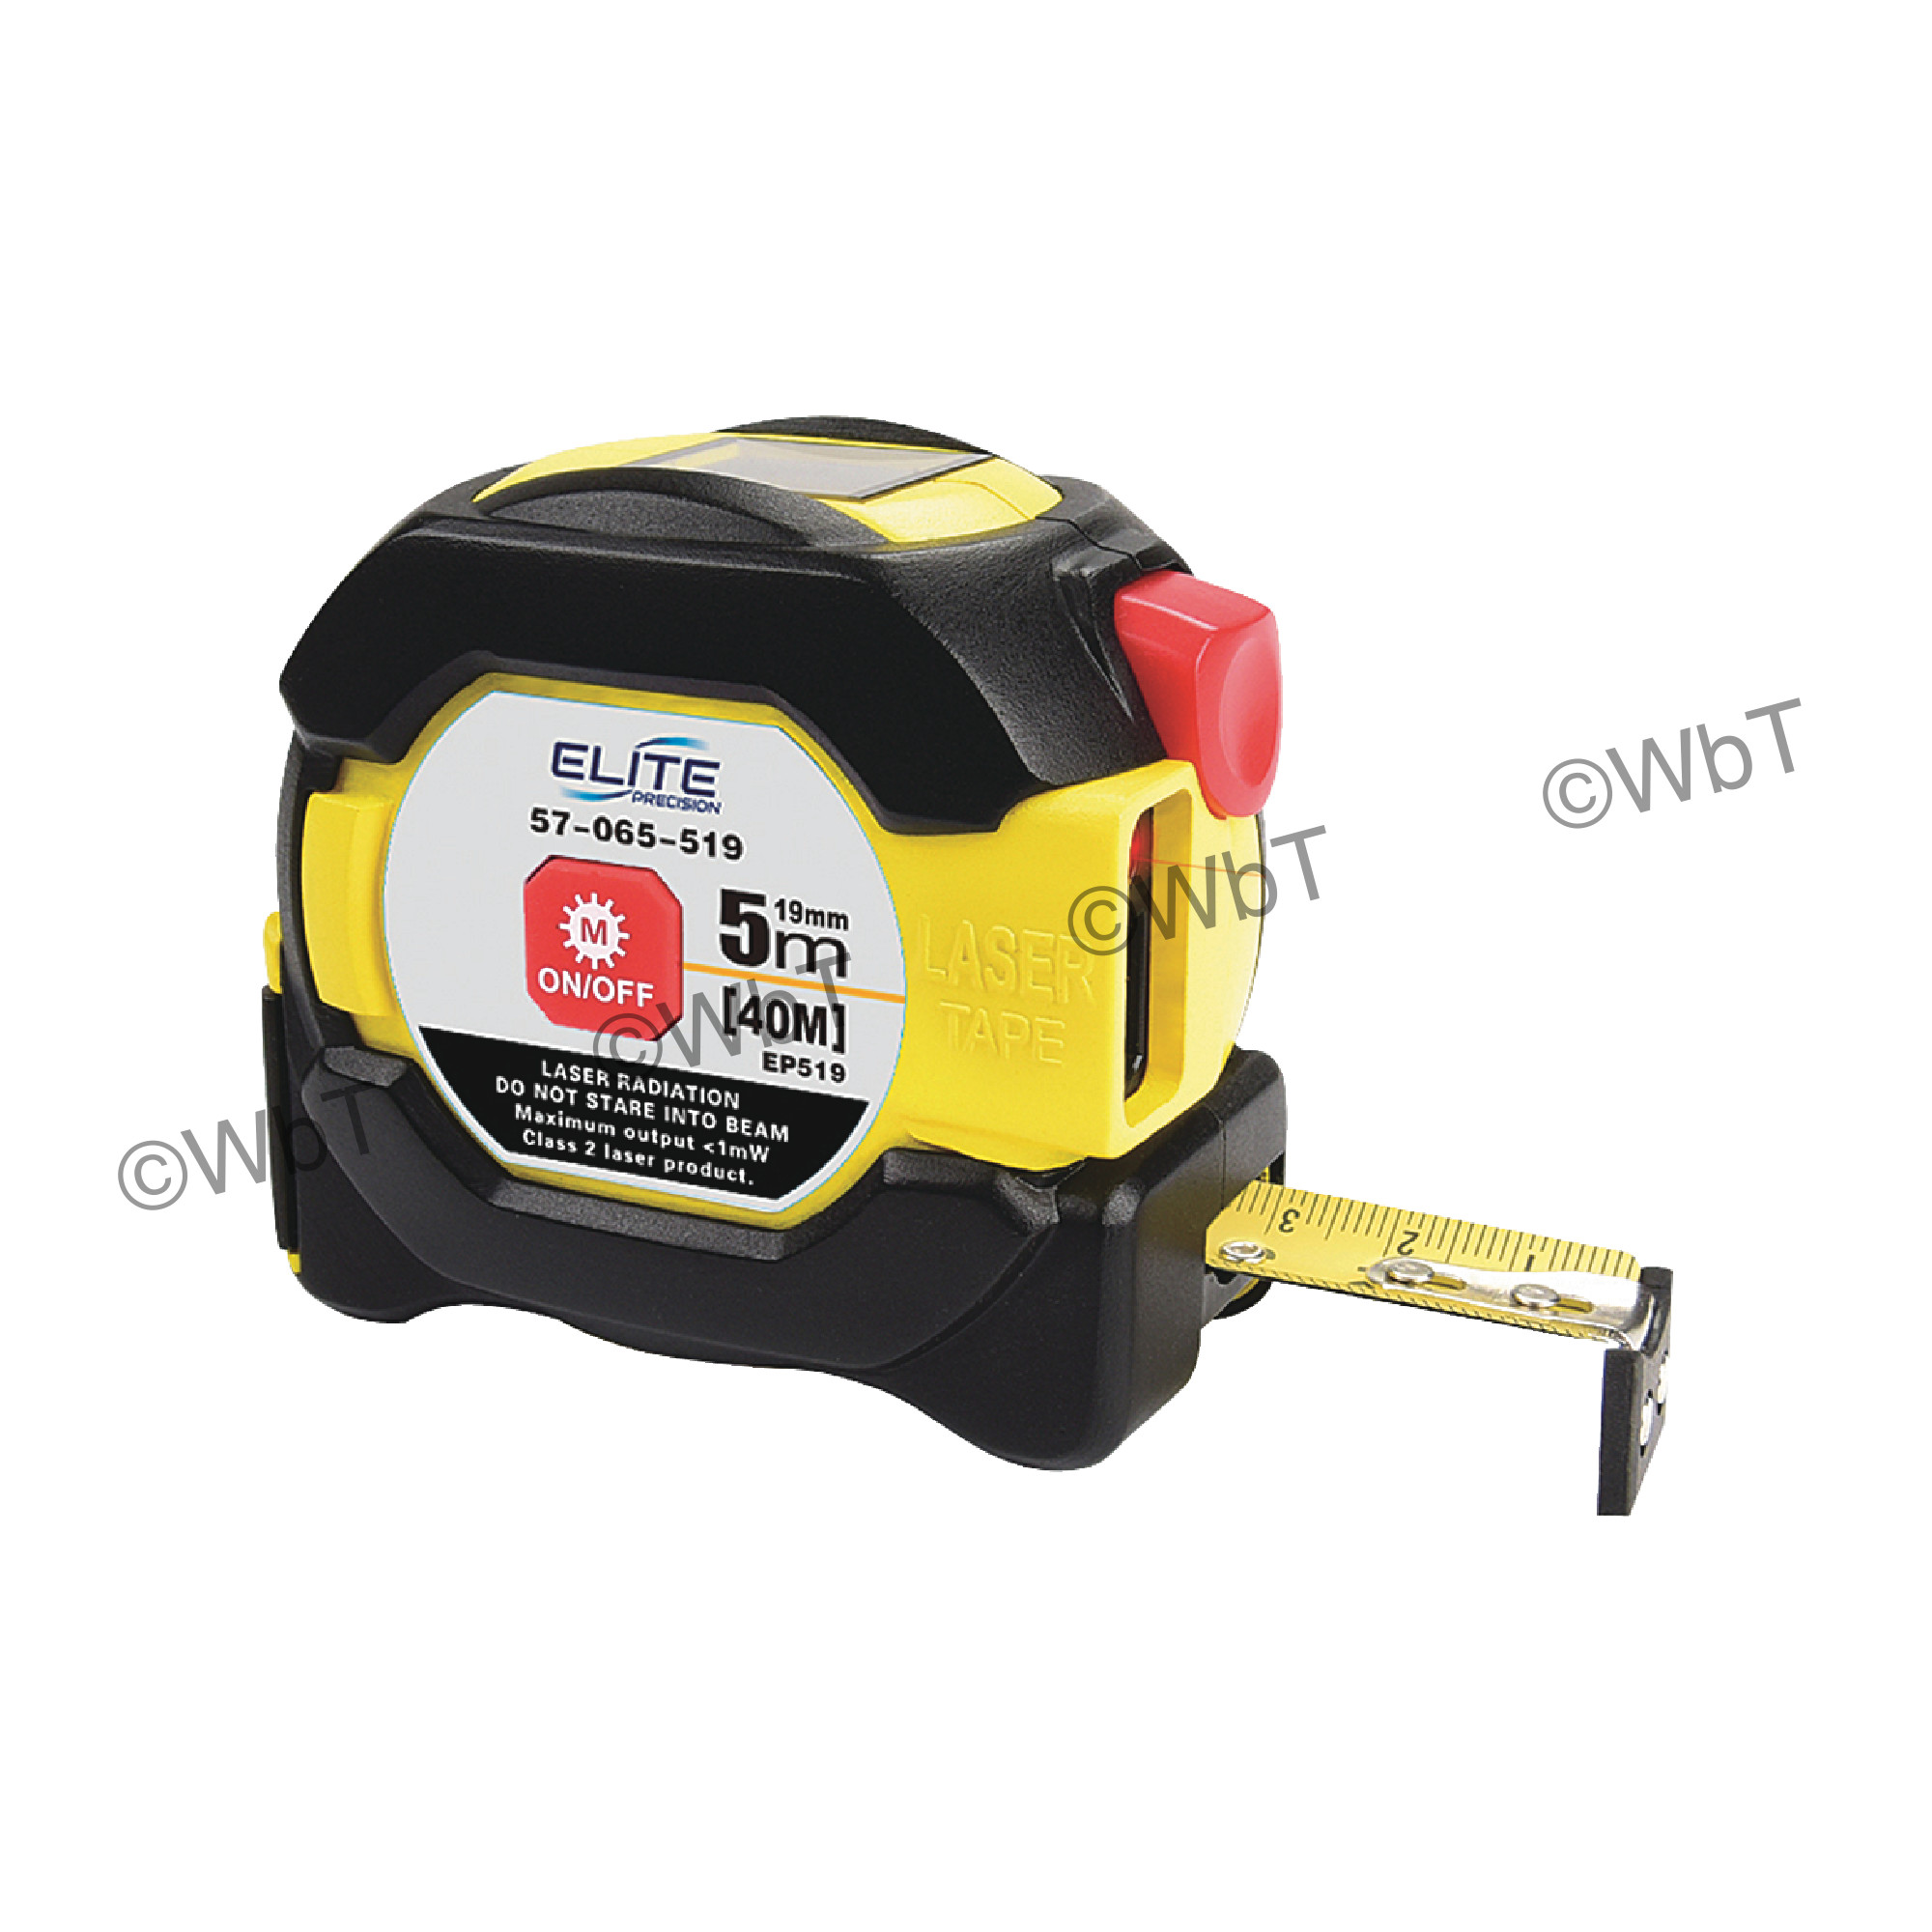 """3/4"""" x 16' Blade with Laser Measuring Tape"""